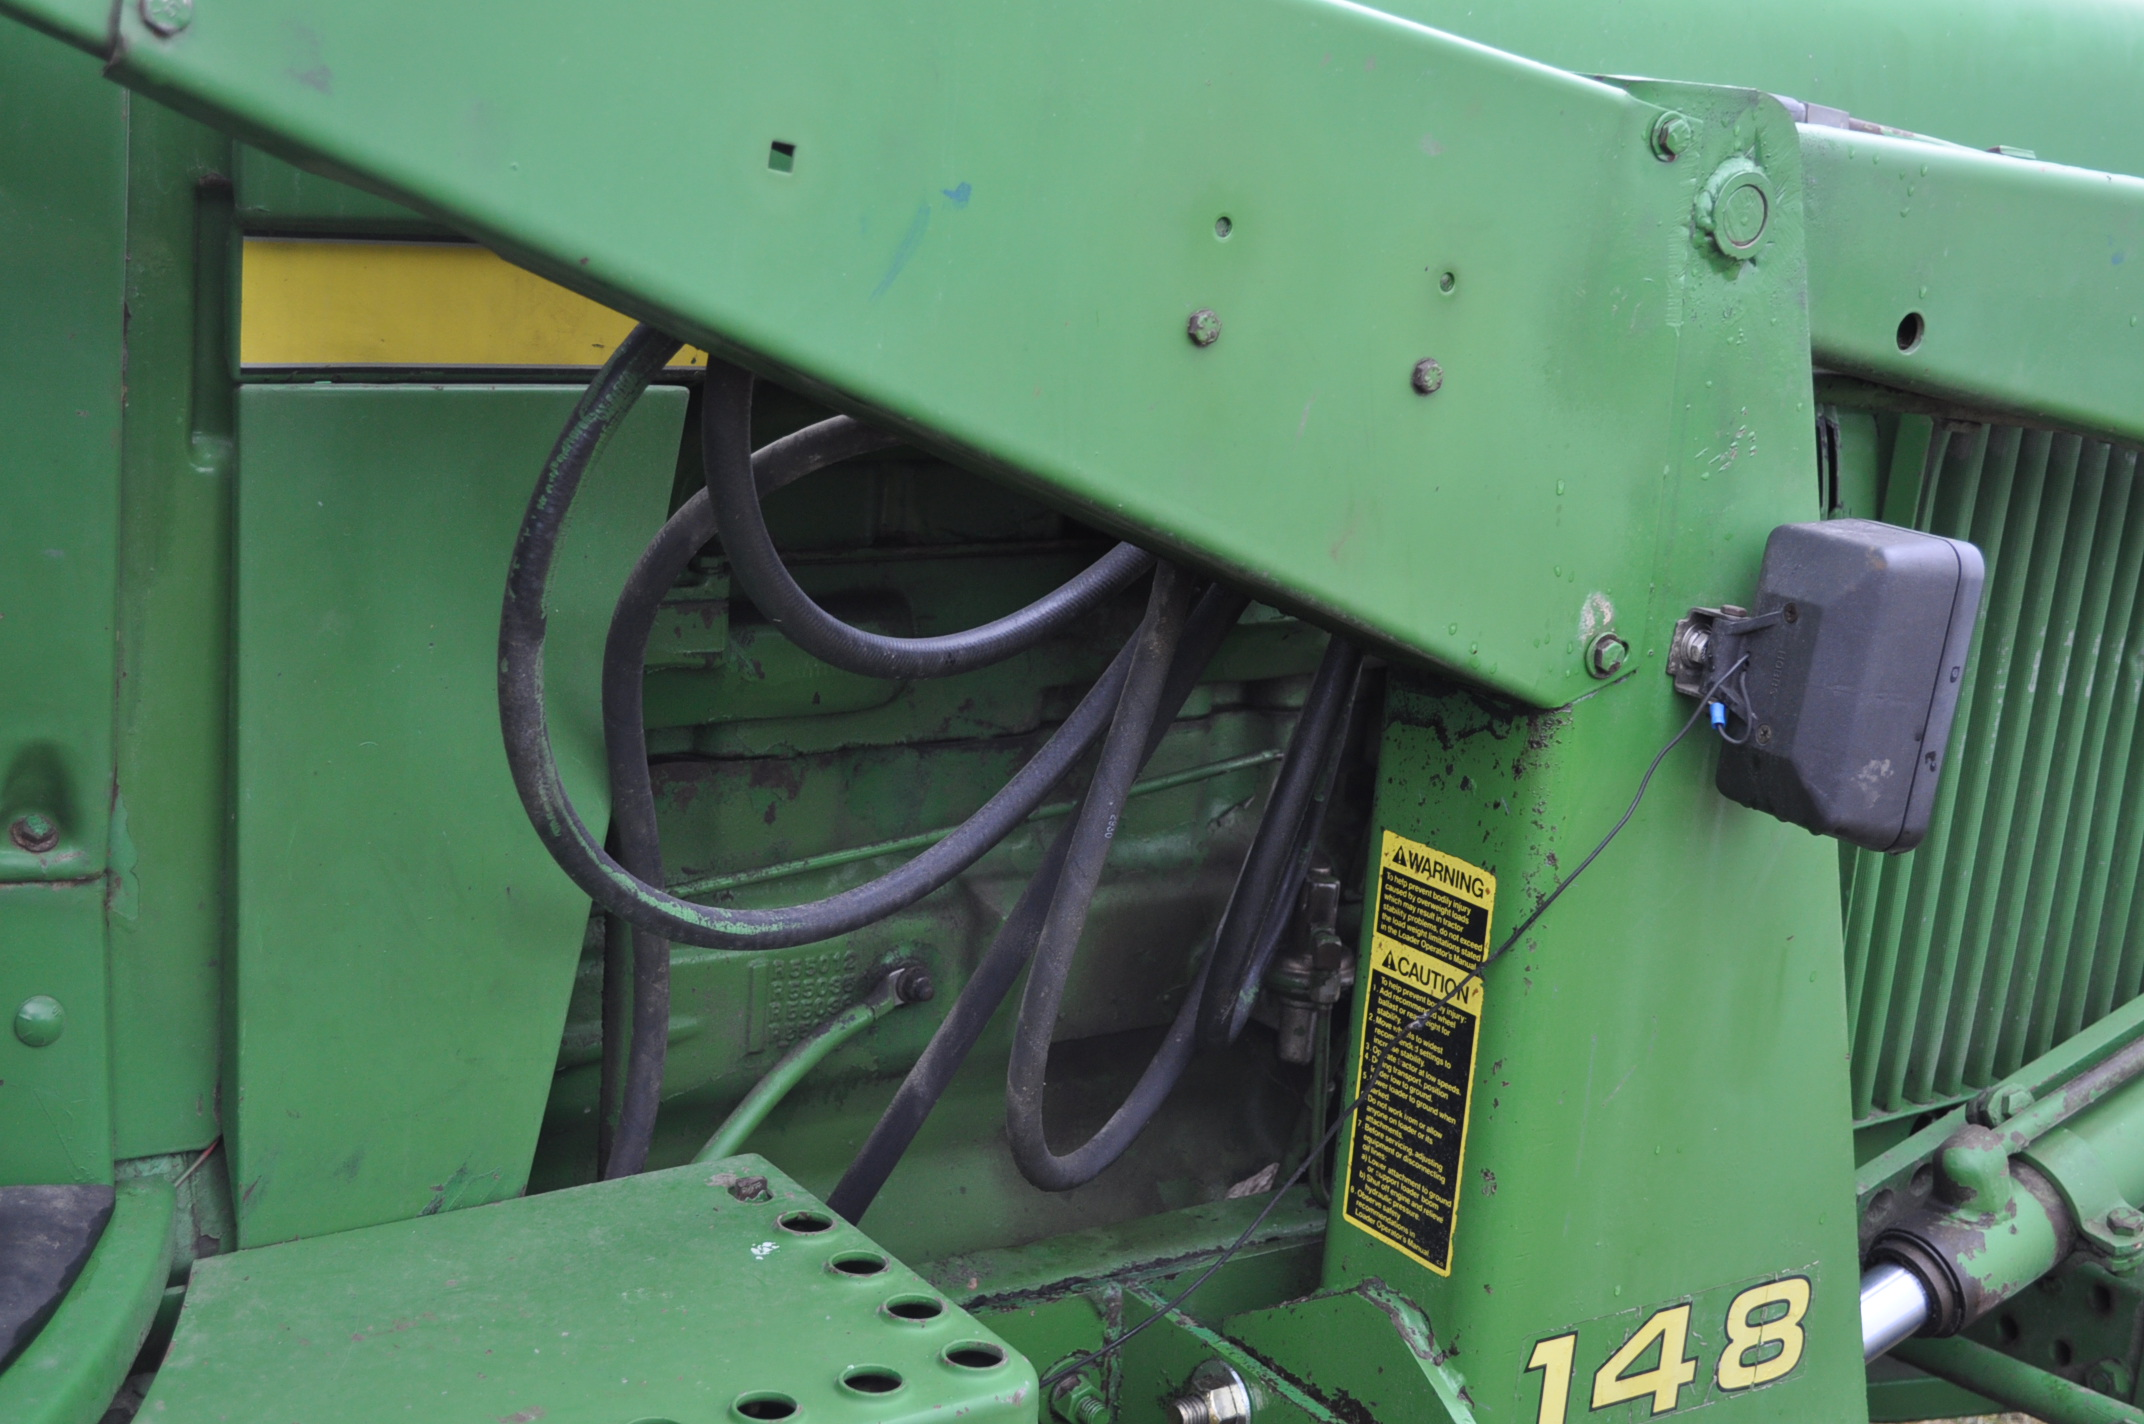 John Deere 4030 tractor, diesel, 18.4-34 rear duals, rear wts, 9.5-15 front, 4-post canopy, Syncro, - Image 16 of 26